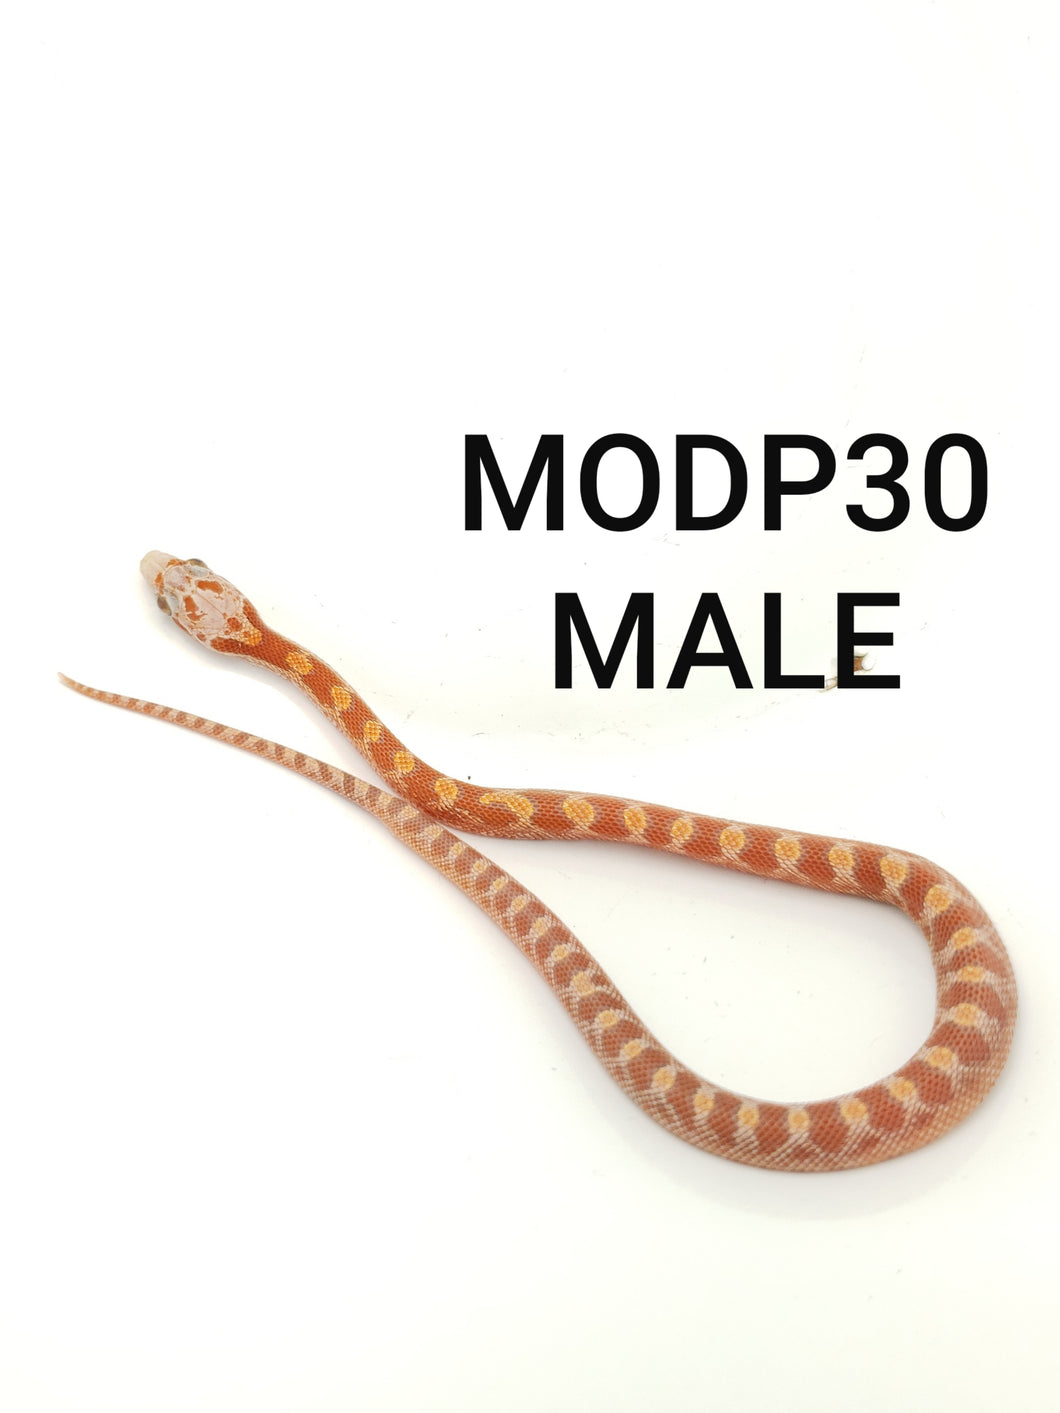 Ultramel Diffused Masque Corn Snake Male